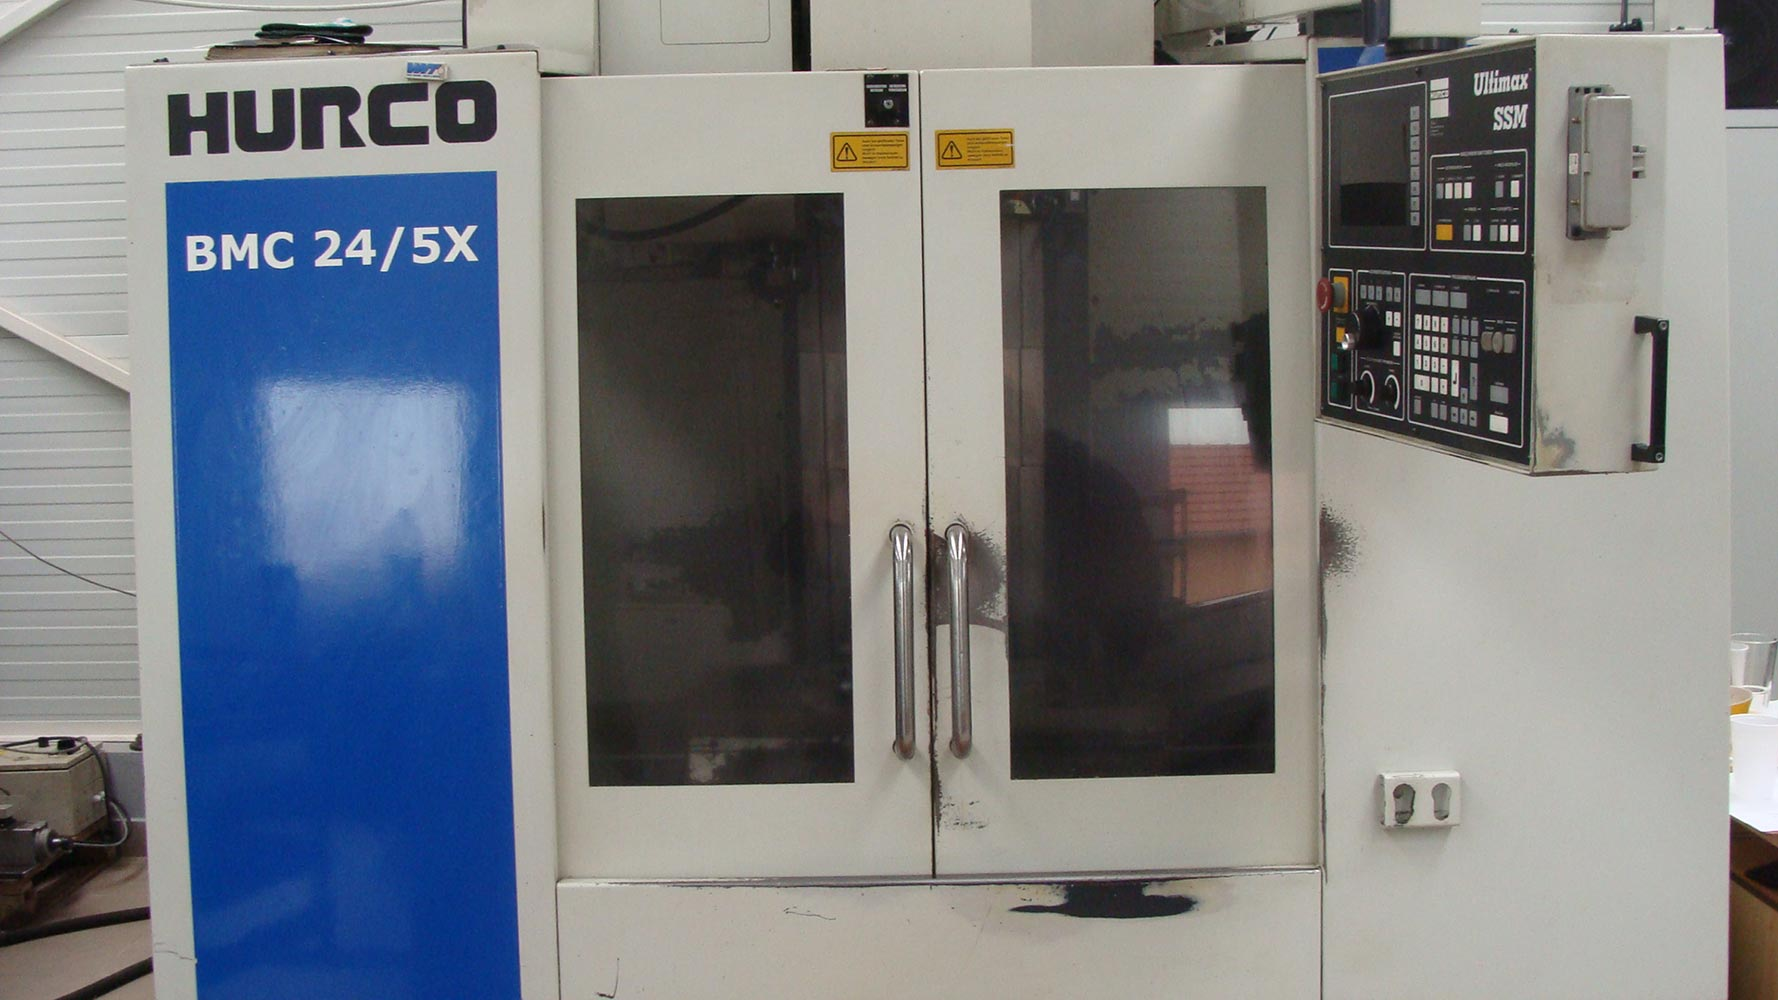 HURCO BMC24/5X CNC machining center